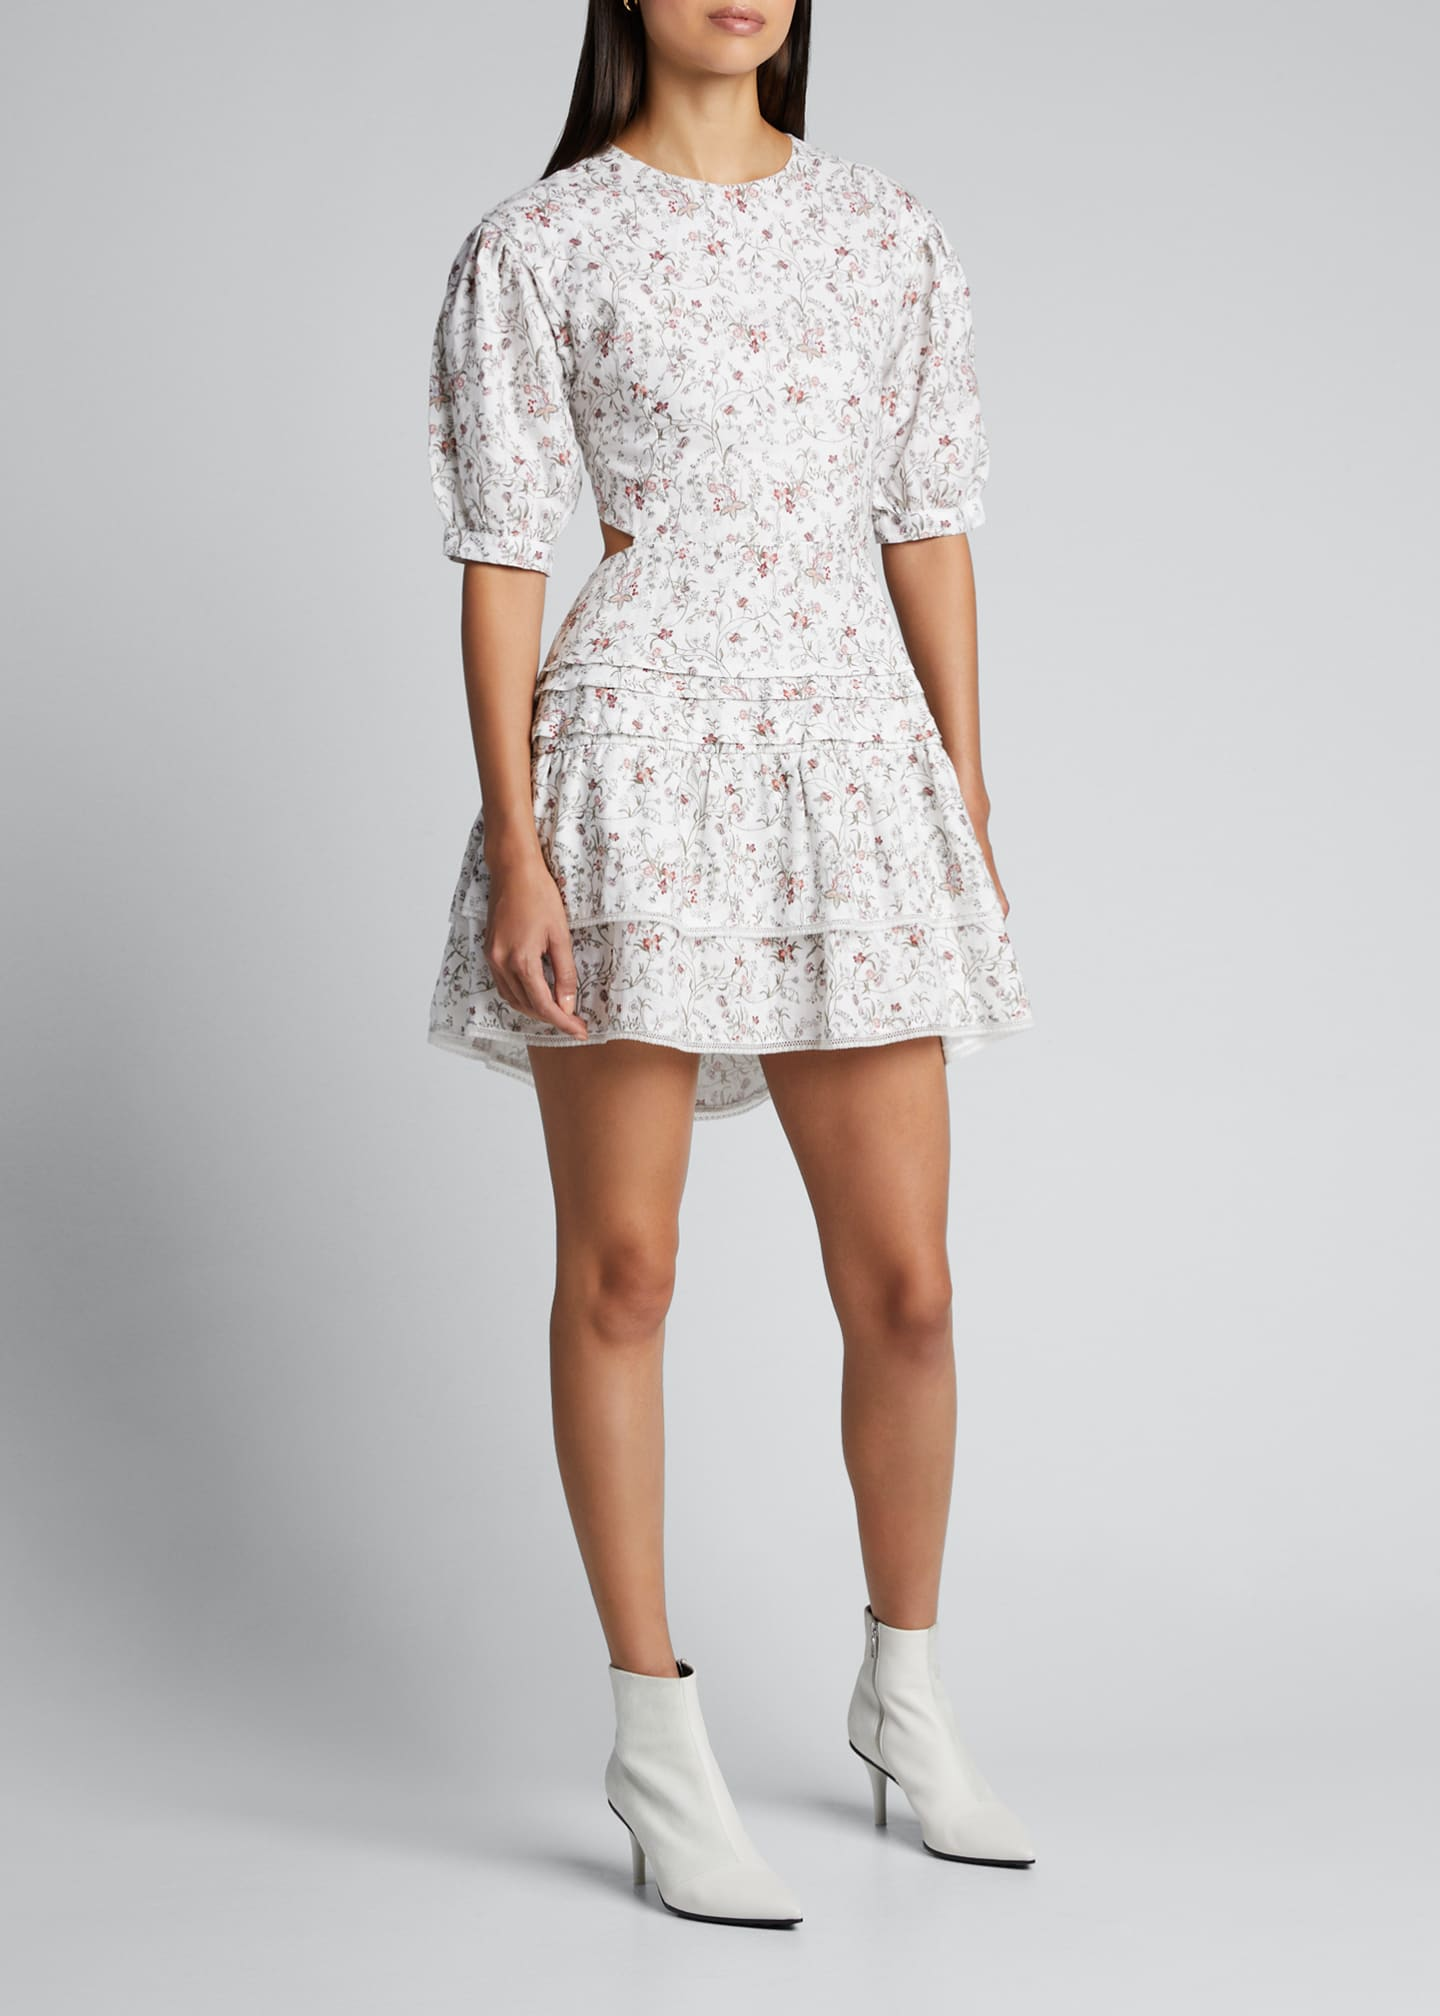 Image 3 of 5: Haisly Floral-Print Mini Dress